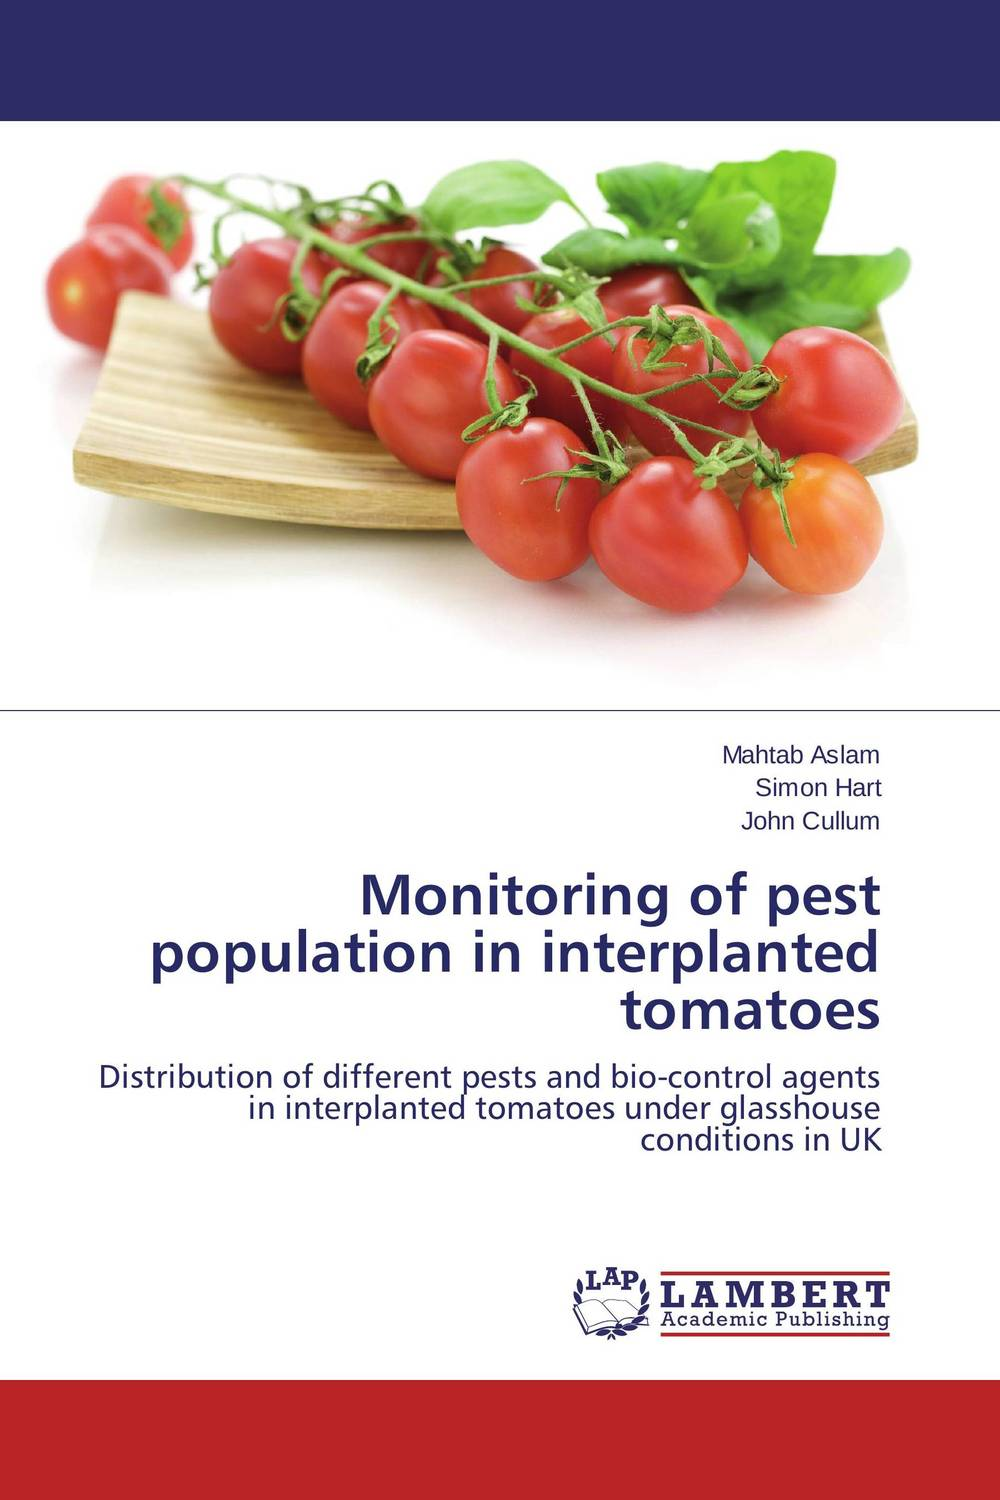 Monitoring of pest population in interplanted tomatoes fatal misconception – the struggle to control world population